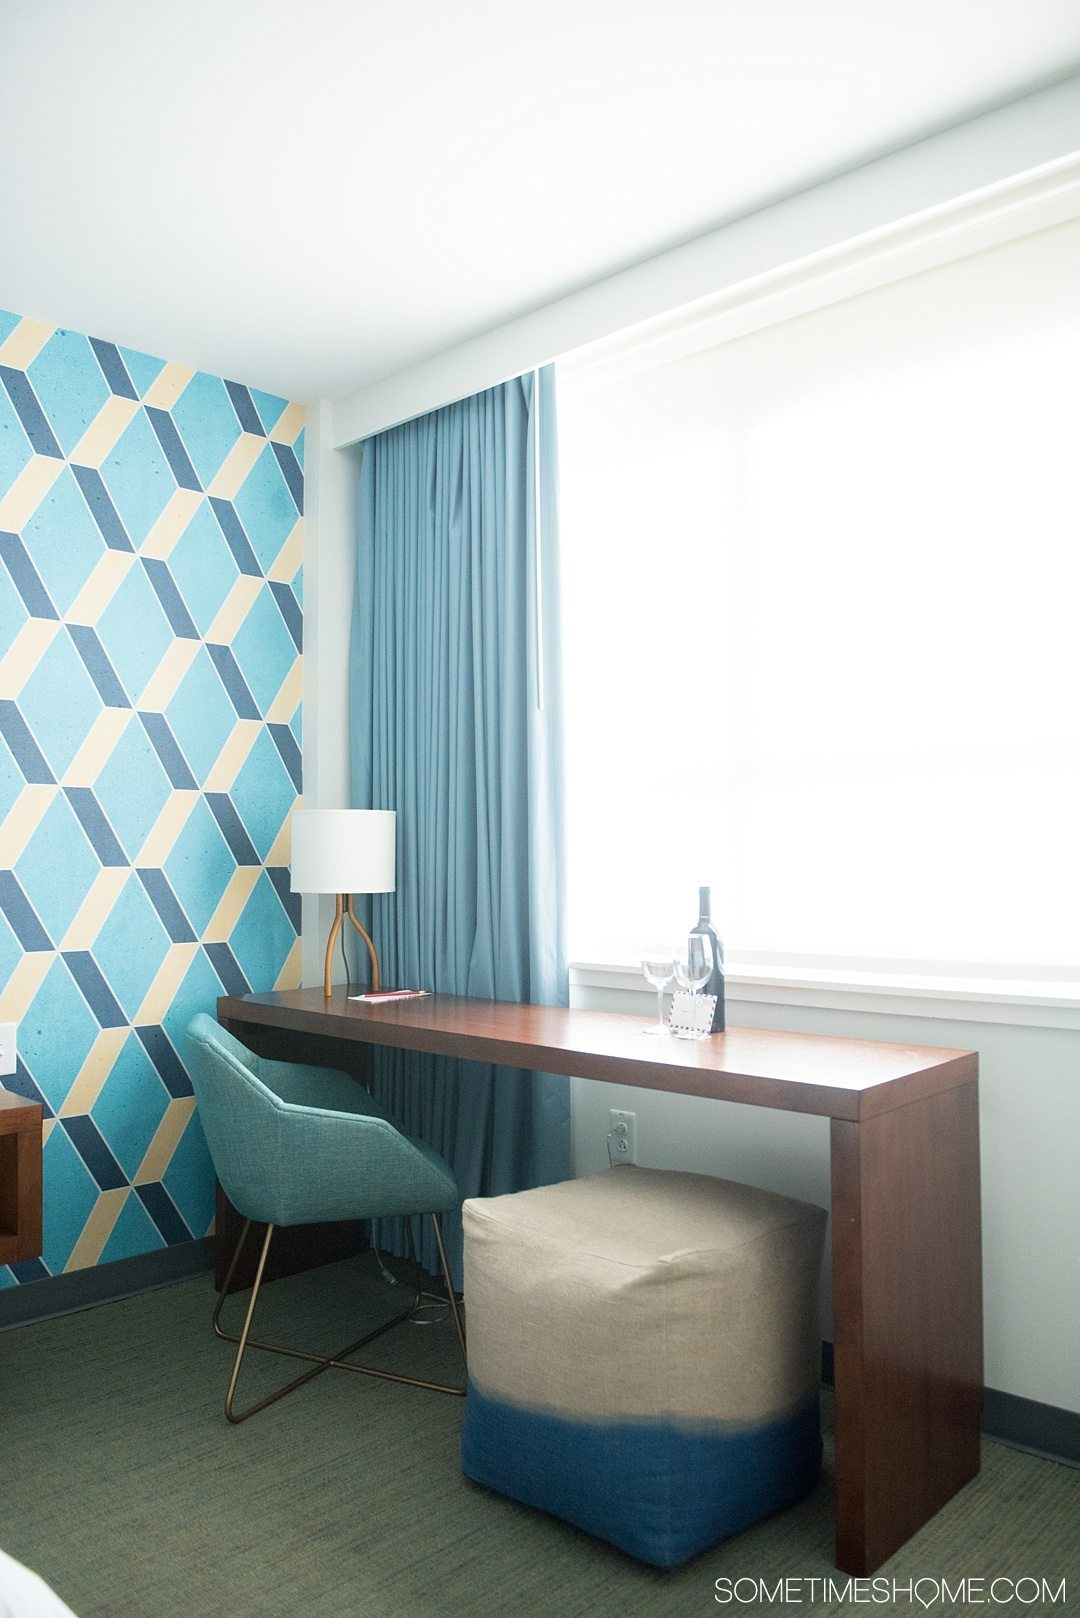 Unscripted Hotel Review Durham in North Carolina. Photos and information on Sometimes Home travel blog. Picture of the hotel room features including a desk area with colorful mid-century modern features and pattern accent wall.